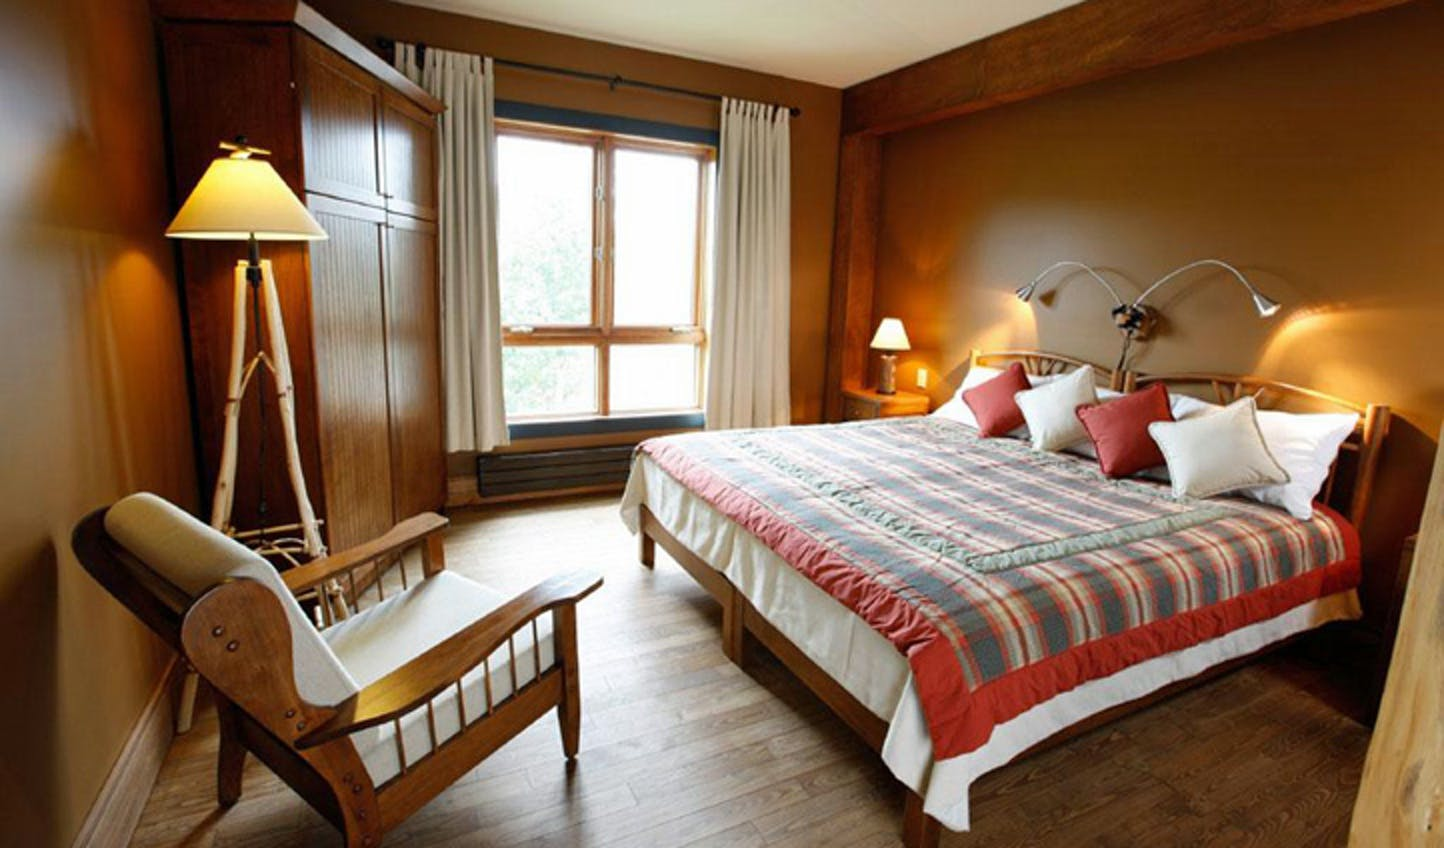 Accommodation in Quebec, Canada